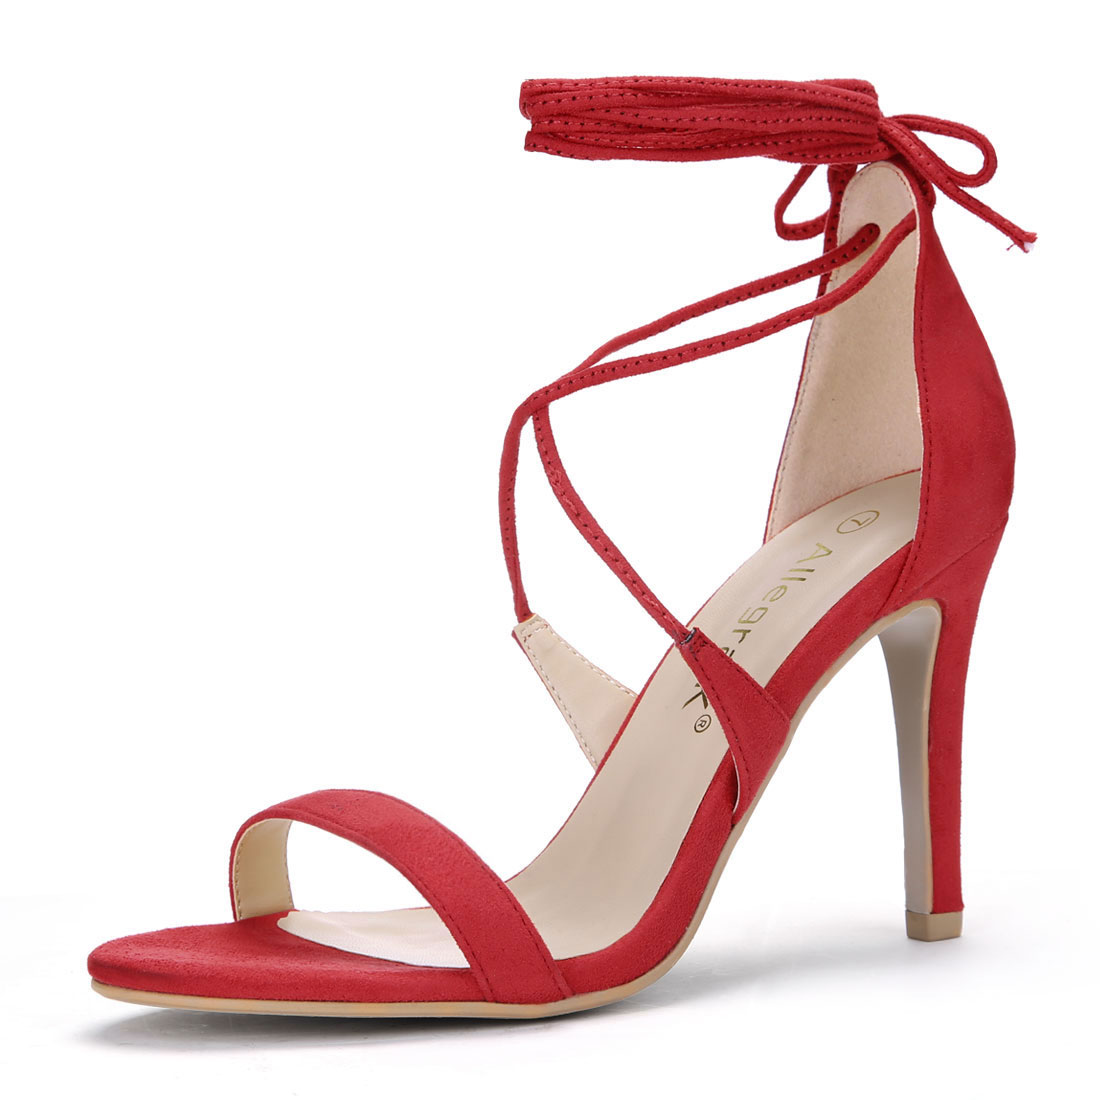 Women Open Toe Stiletto High Heel Lace-Up Sandals Red US 6